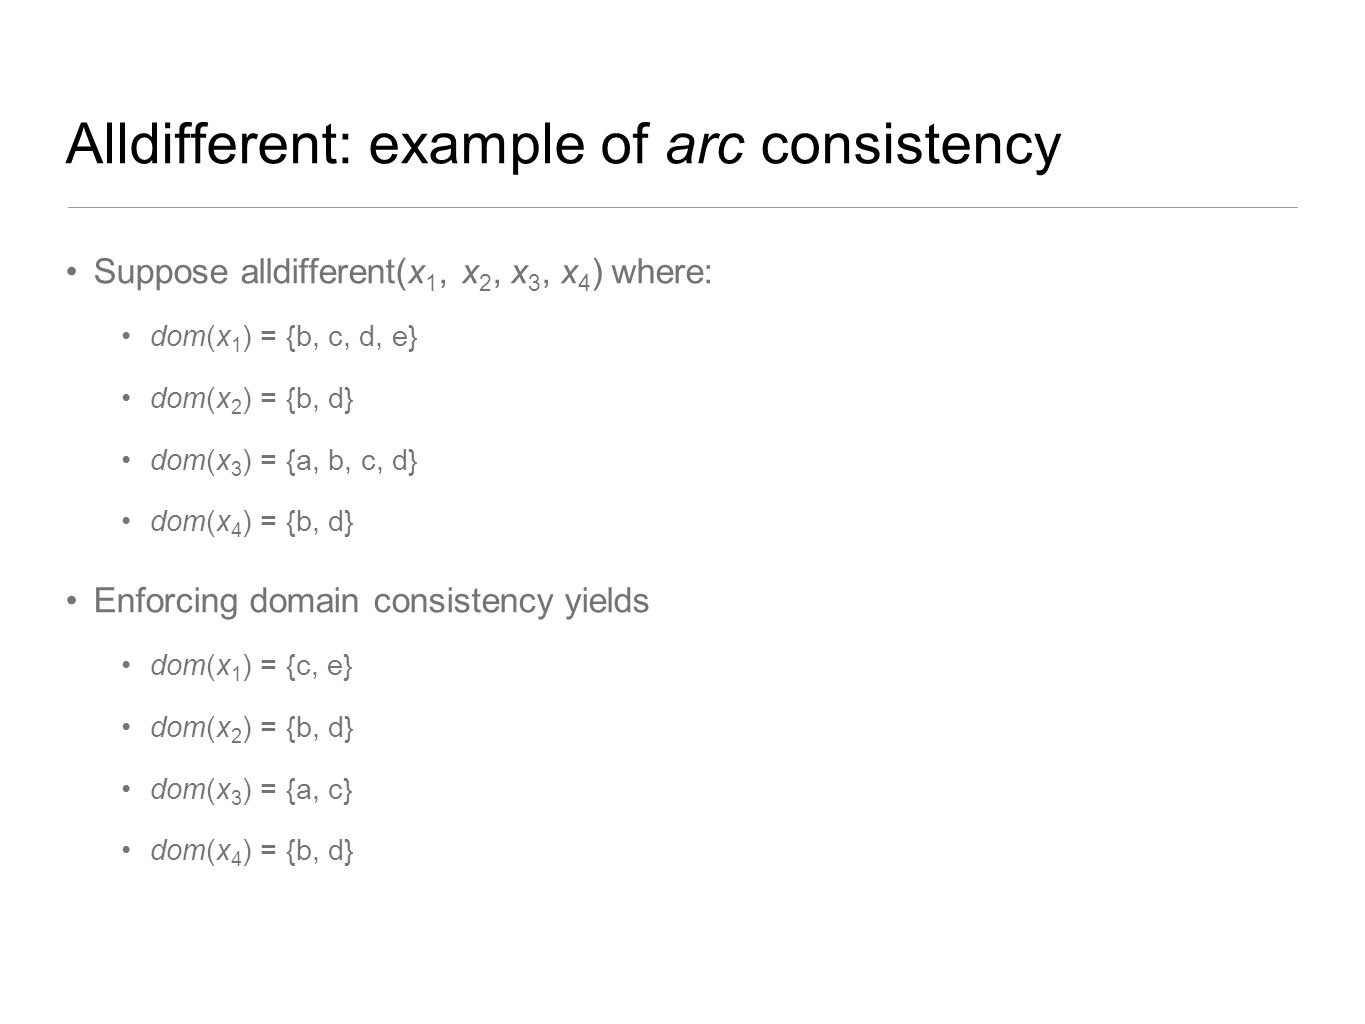 Alldifferent: example of arc consistency